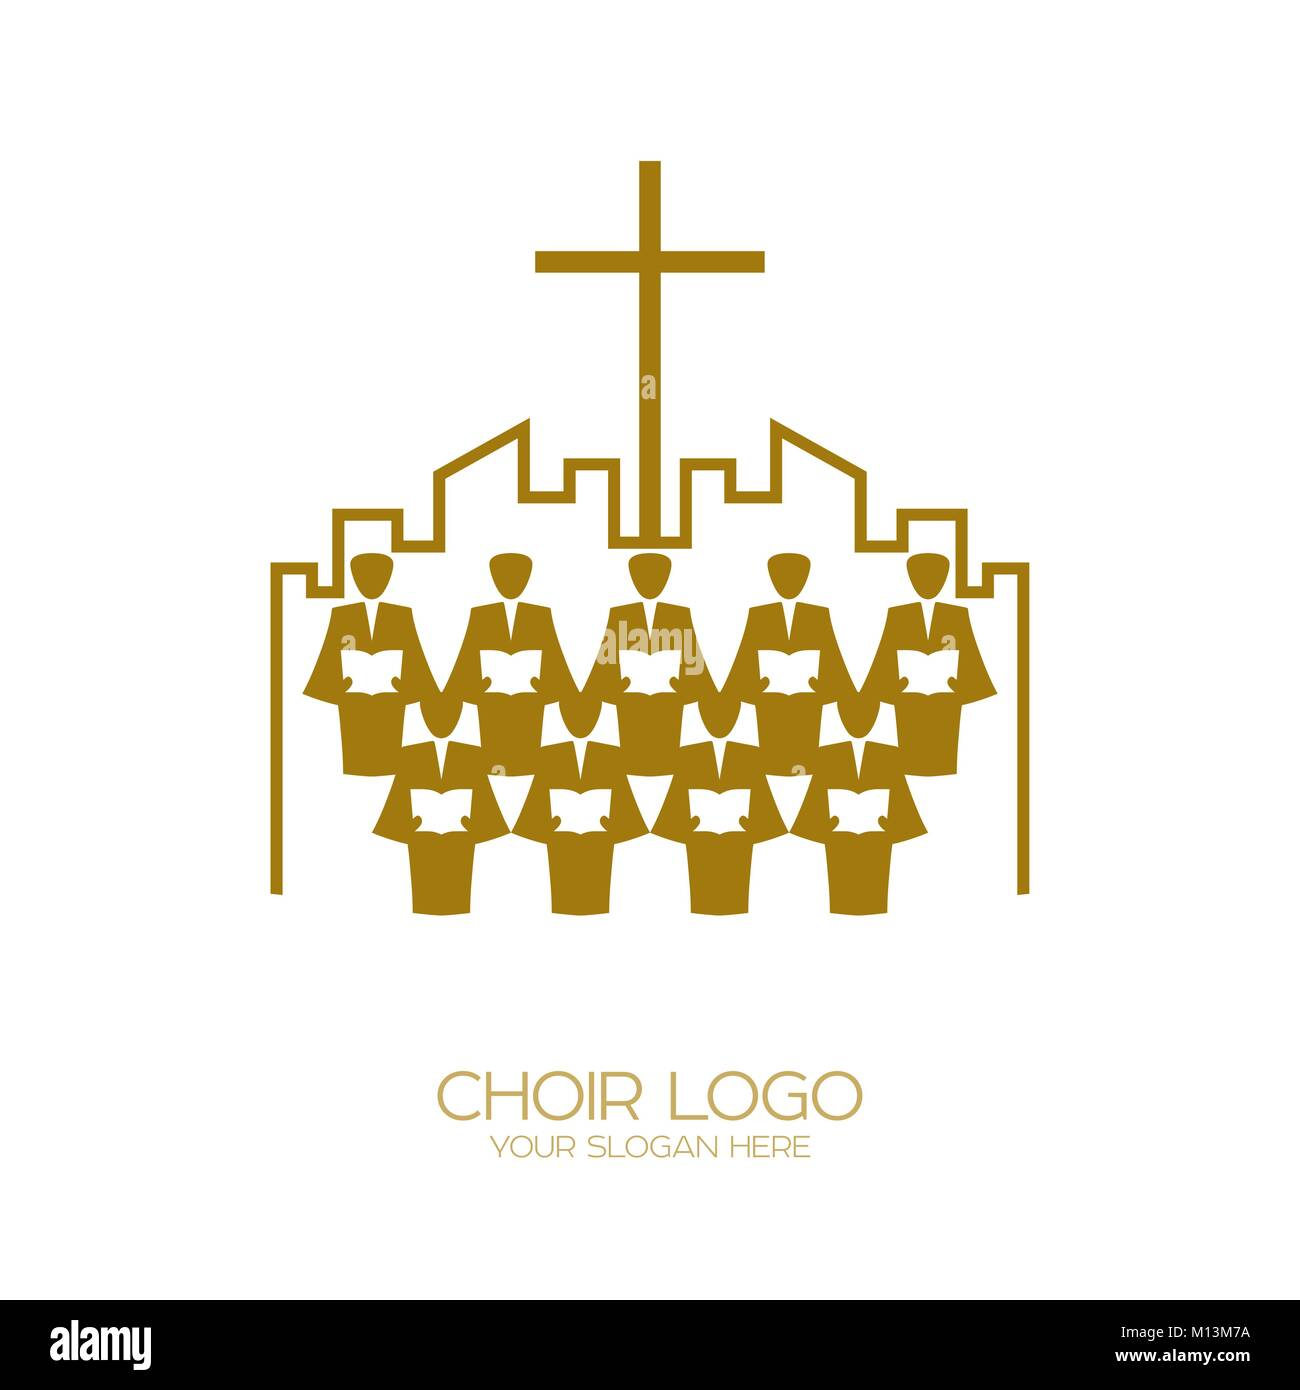 Music logo christian symbols the church of god sings to jesus music logo christian symbols the church of god sings to jesus christ a song of glory buycottarizona Image collections